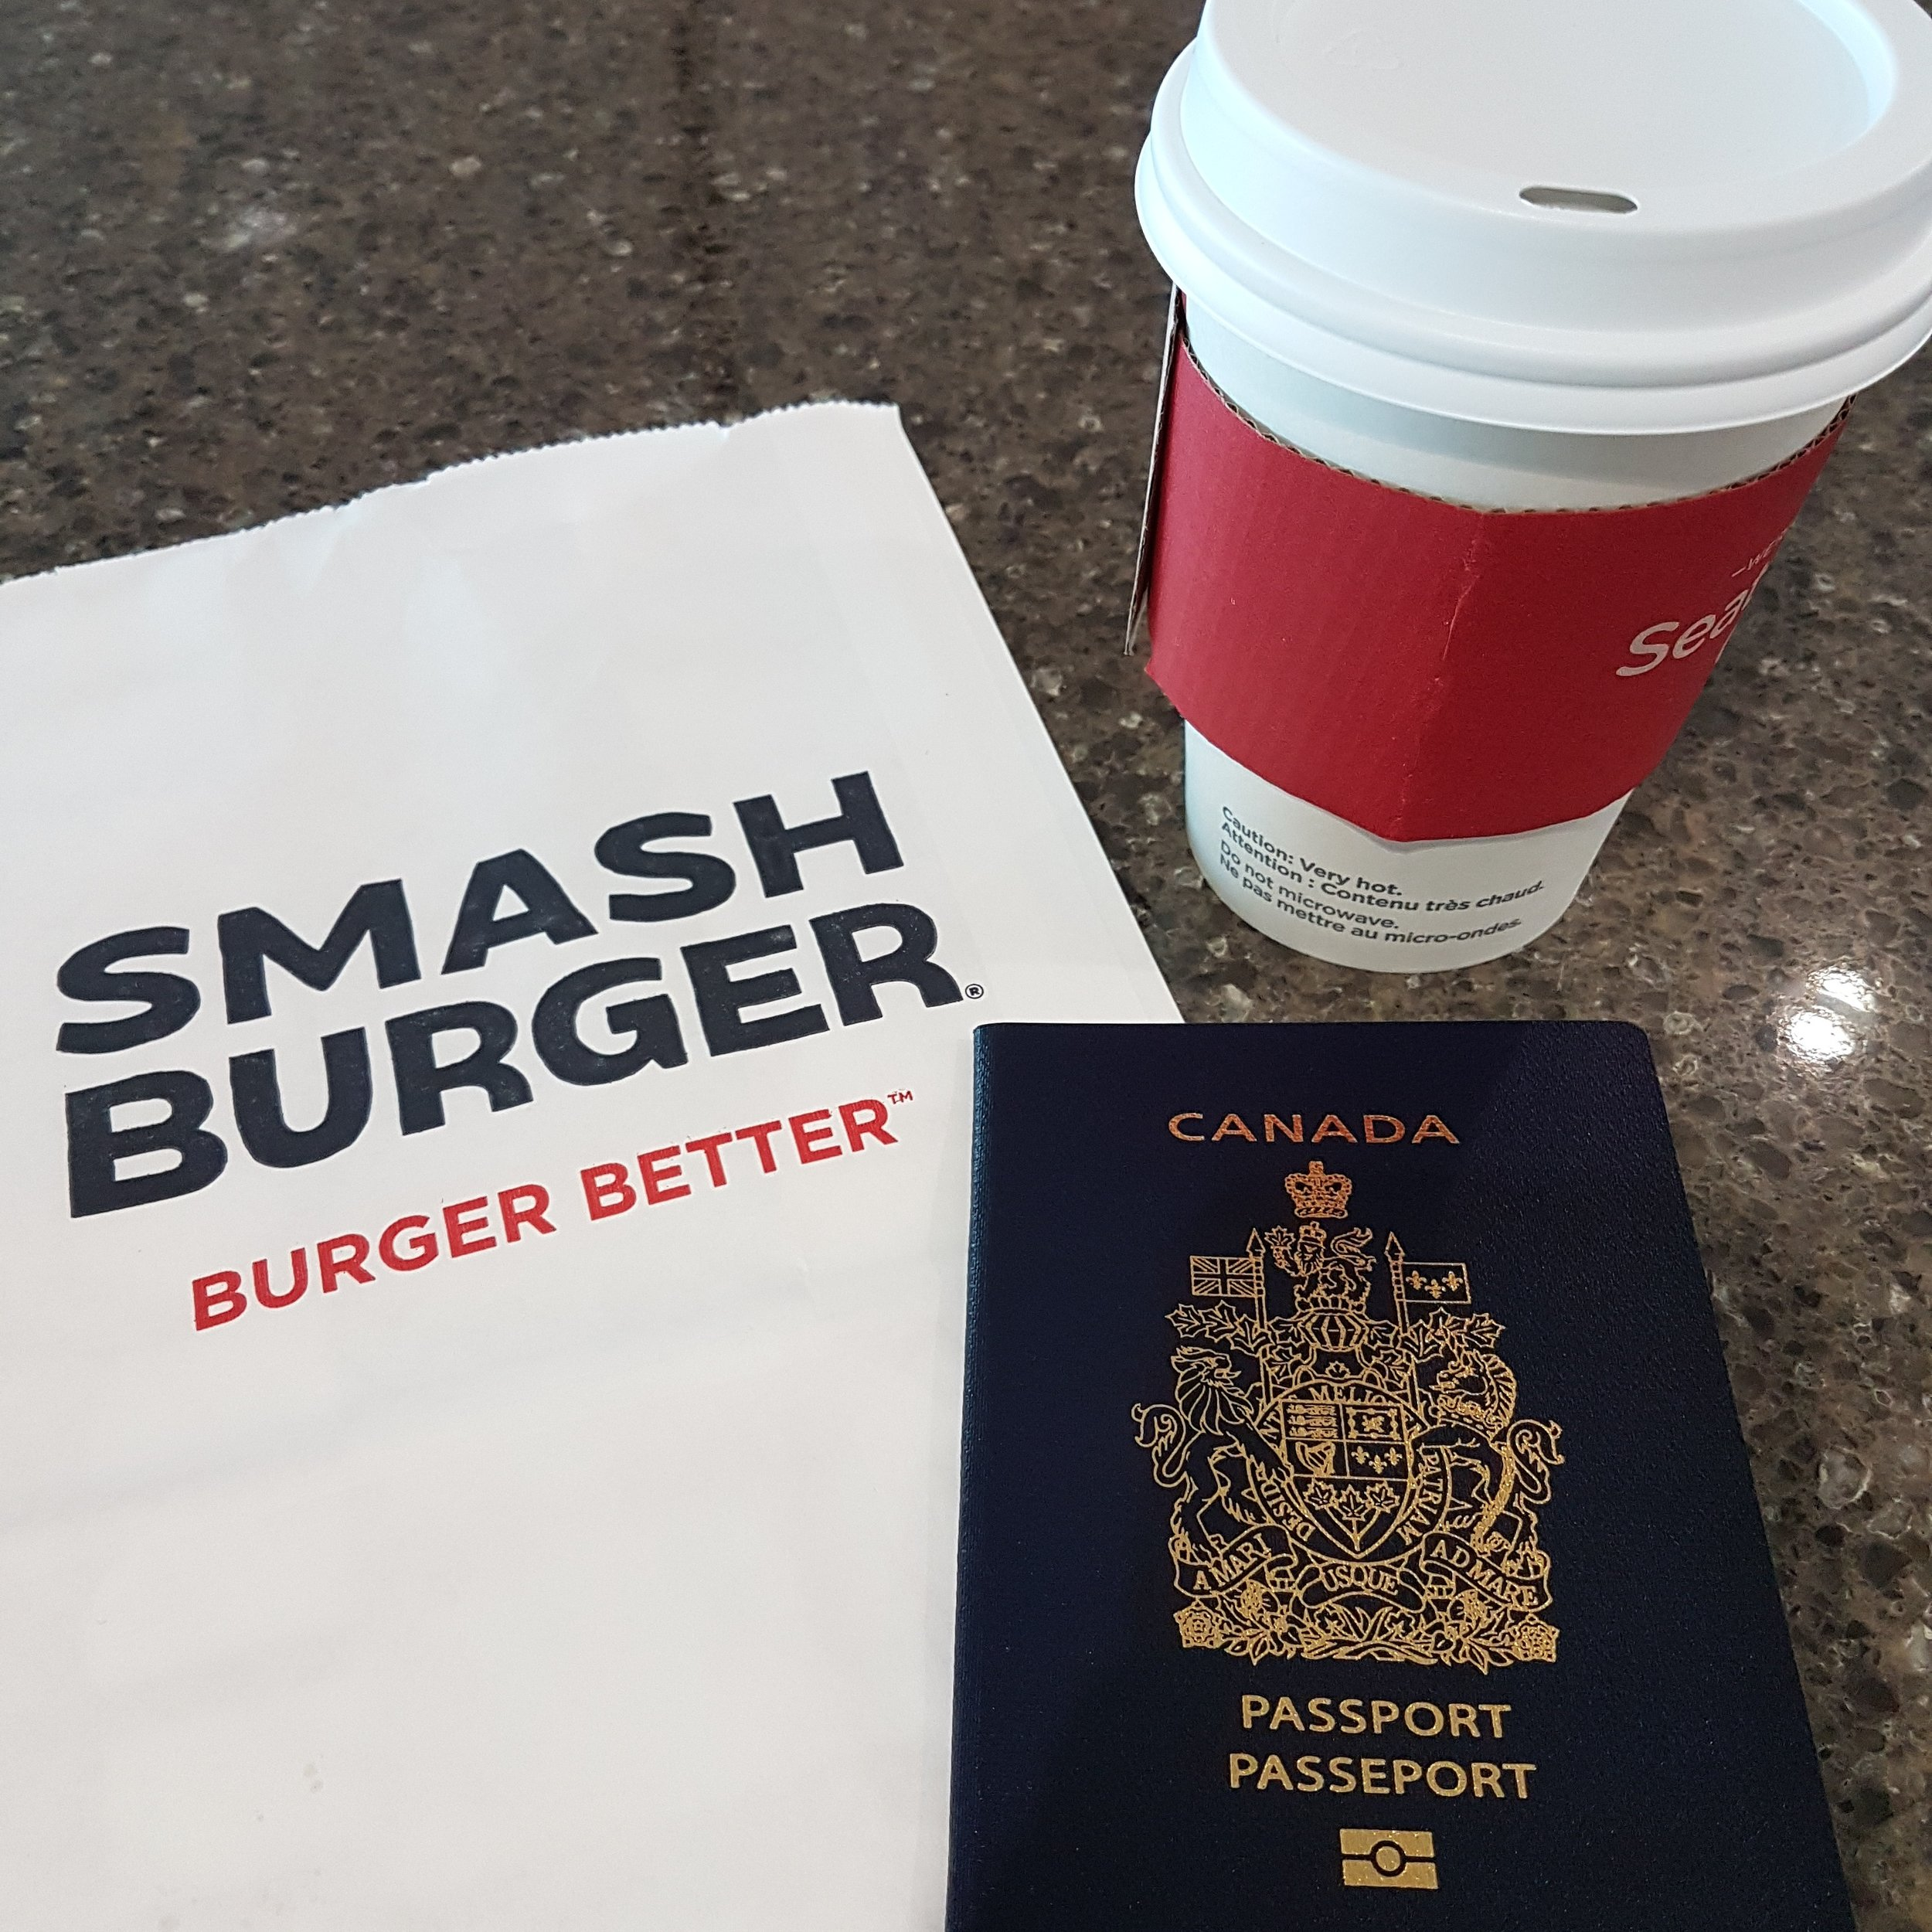 Have you guys tried the breakfast at Smash Burger??? Delish!